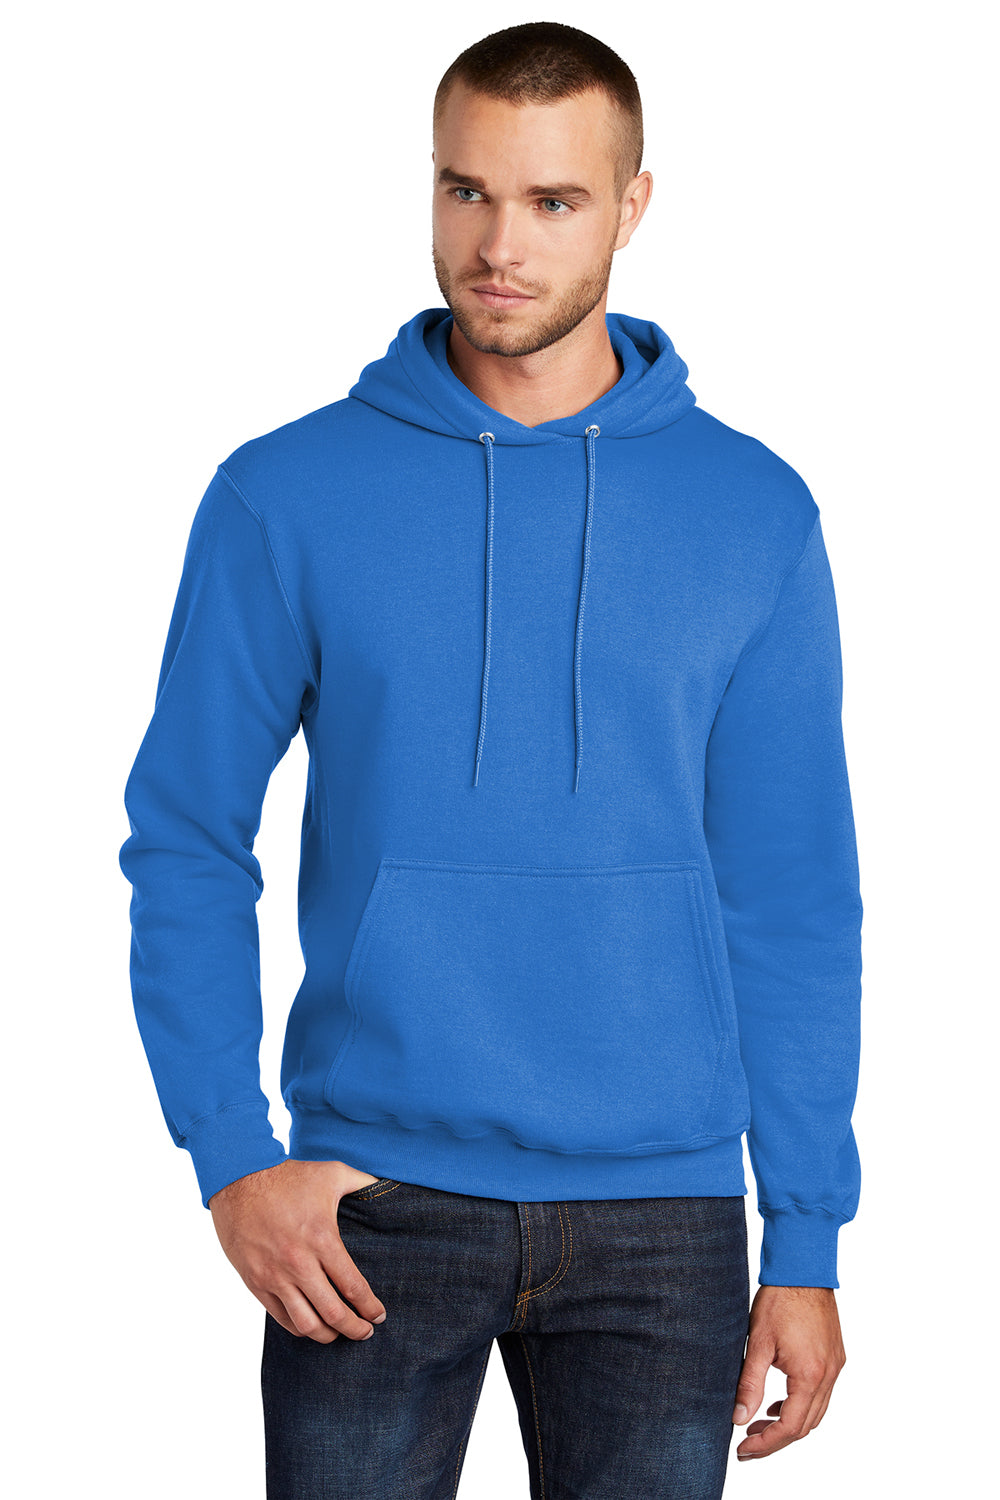 Port & Company PC78H Mens Core Fleece Hooded Sweatshirt Hoodie Royal Blue Front